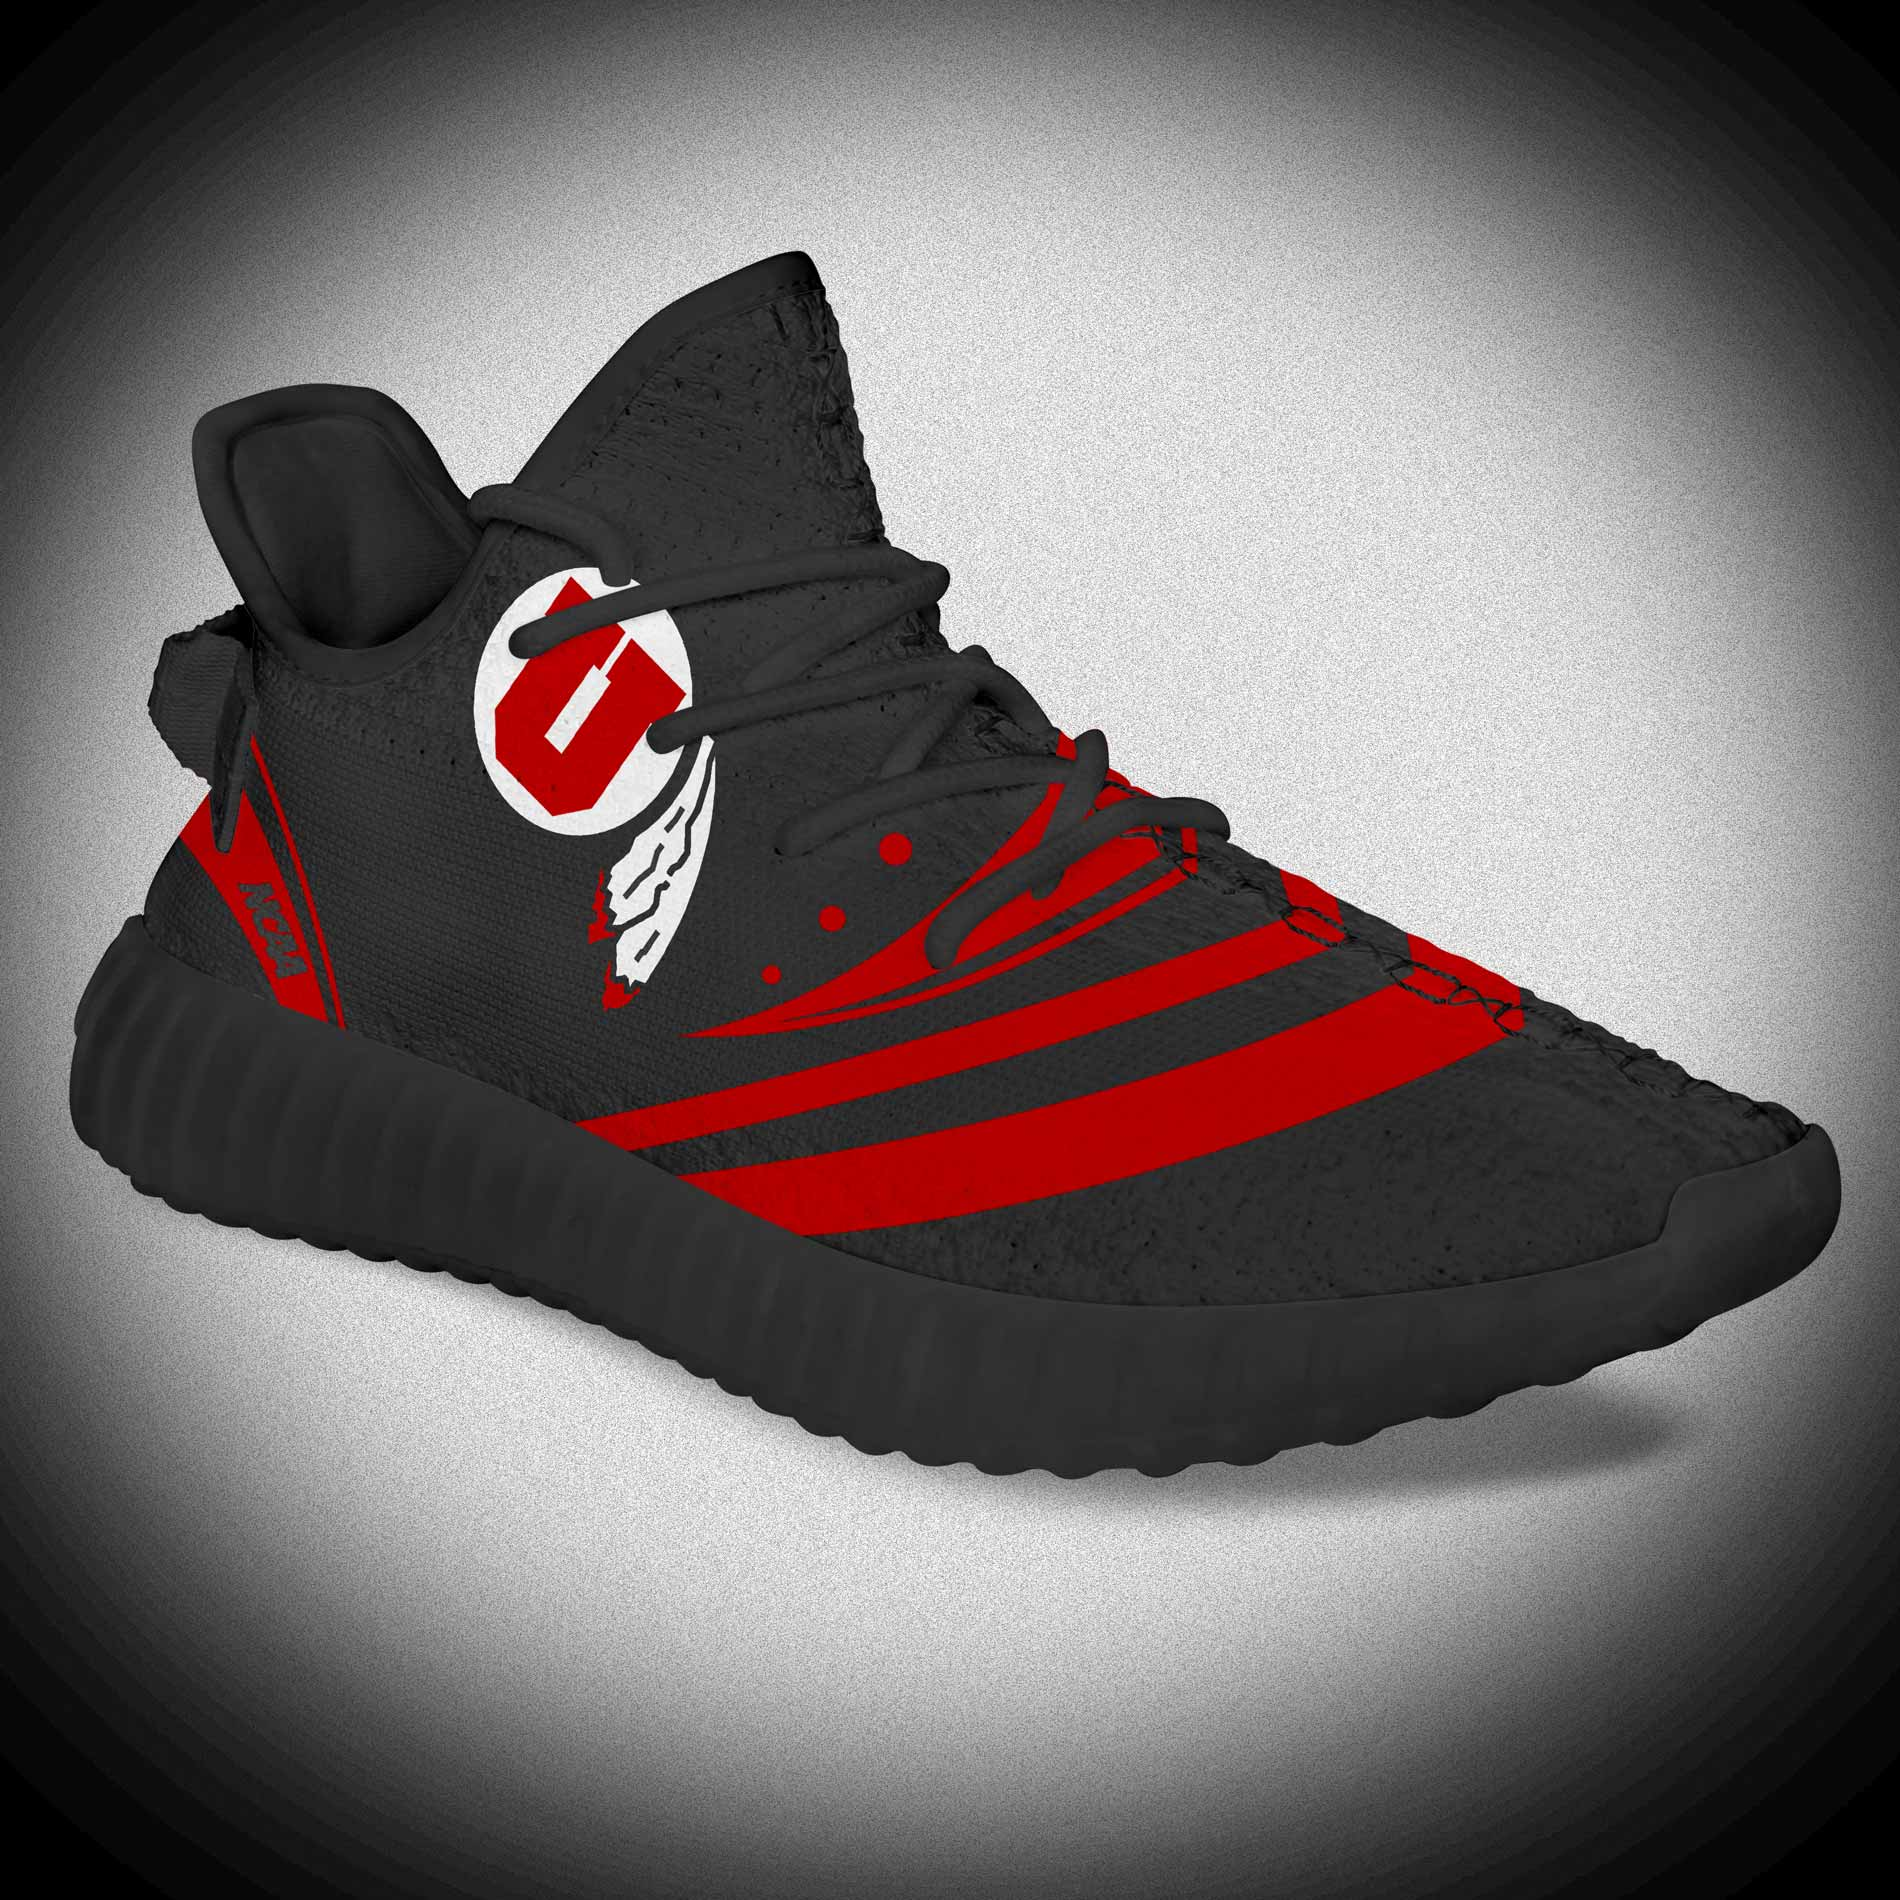 Custom Breathable Fly Knitting 350 Top Brand Sports Yeezy Shoes